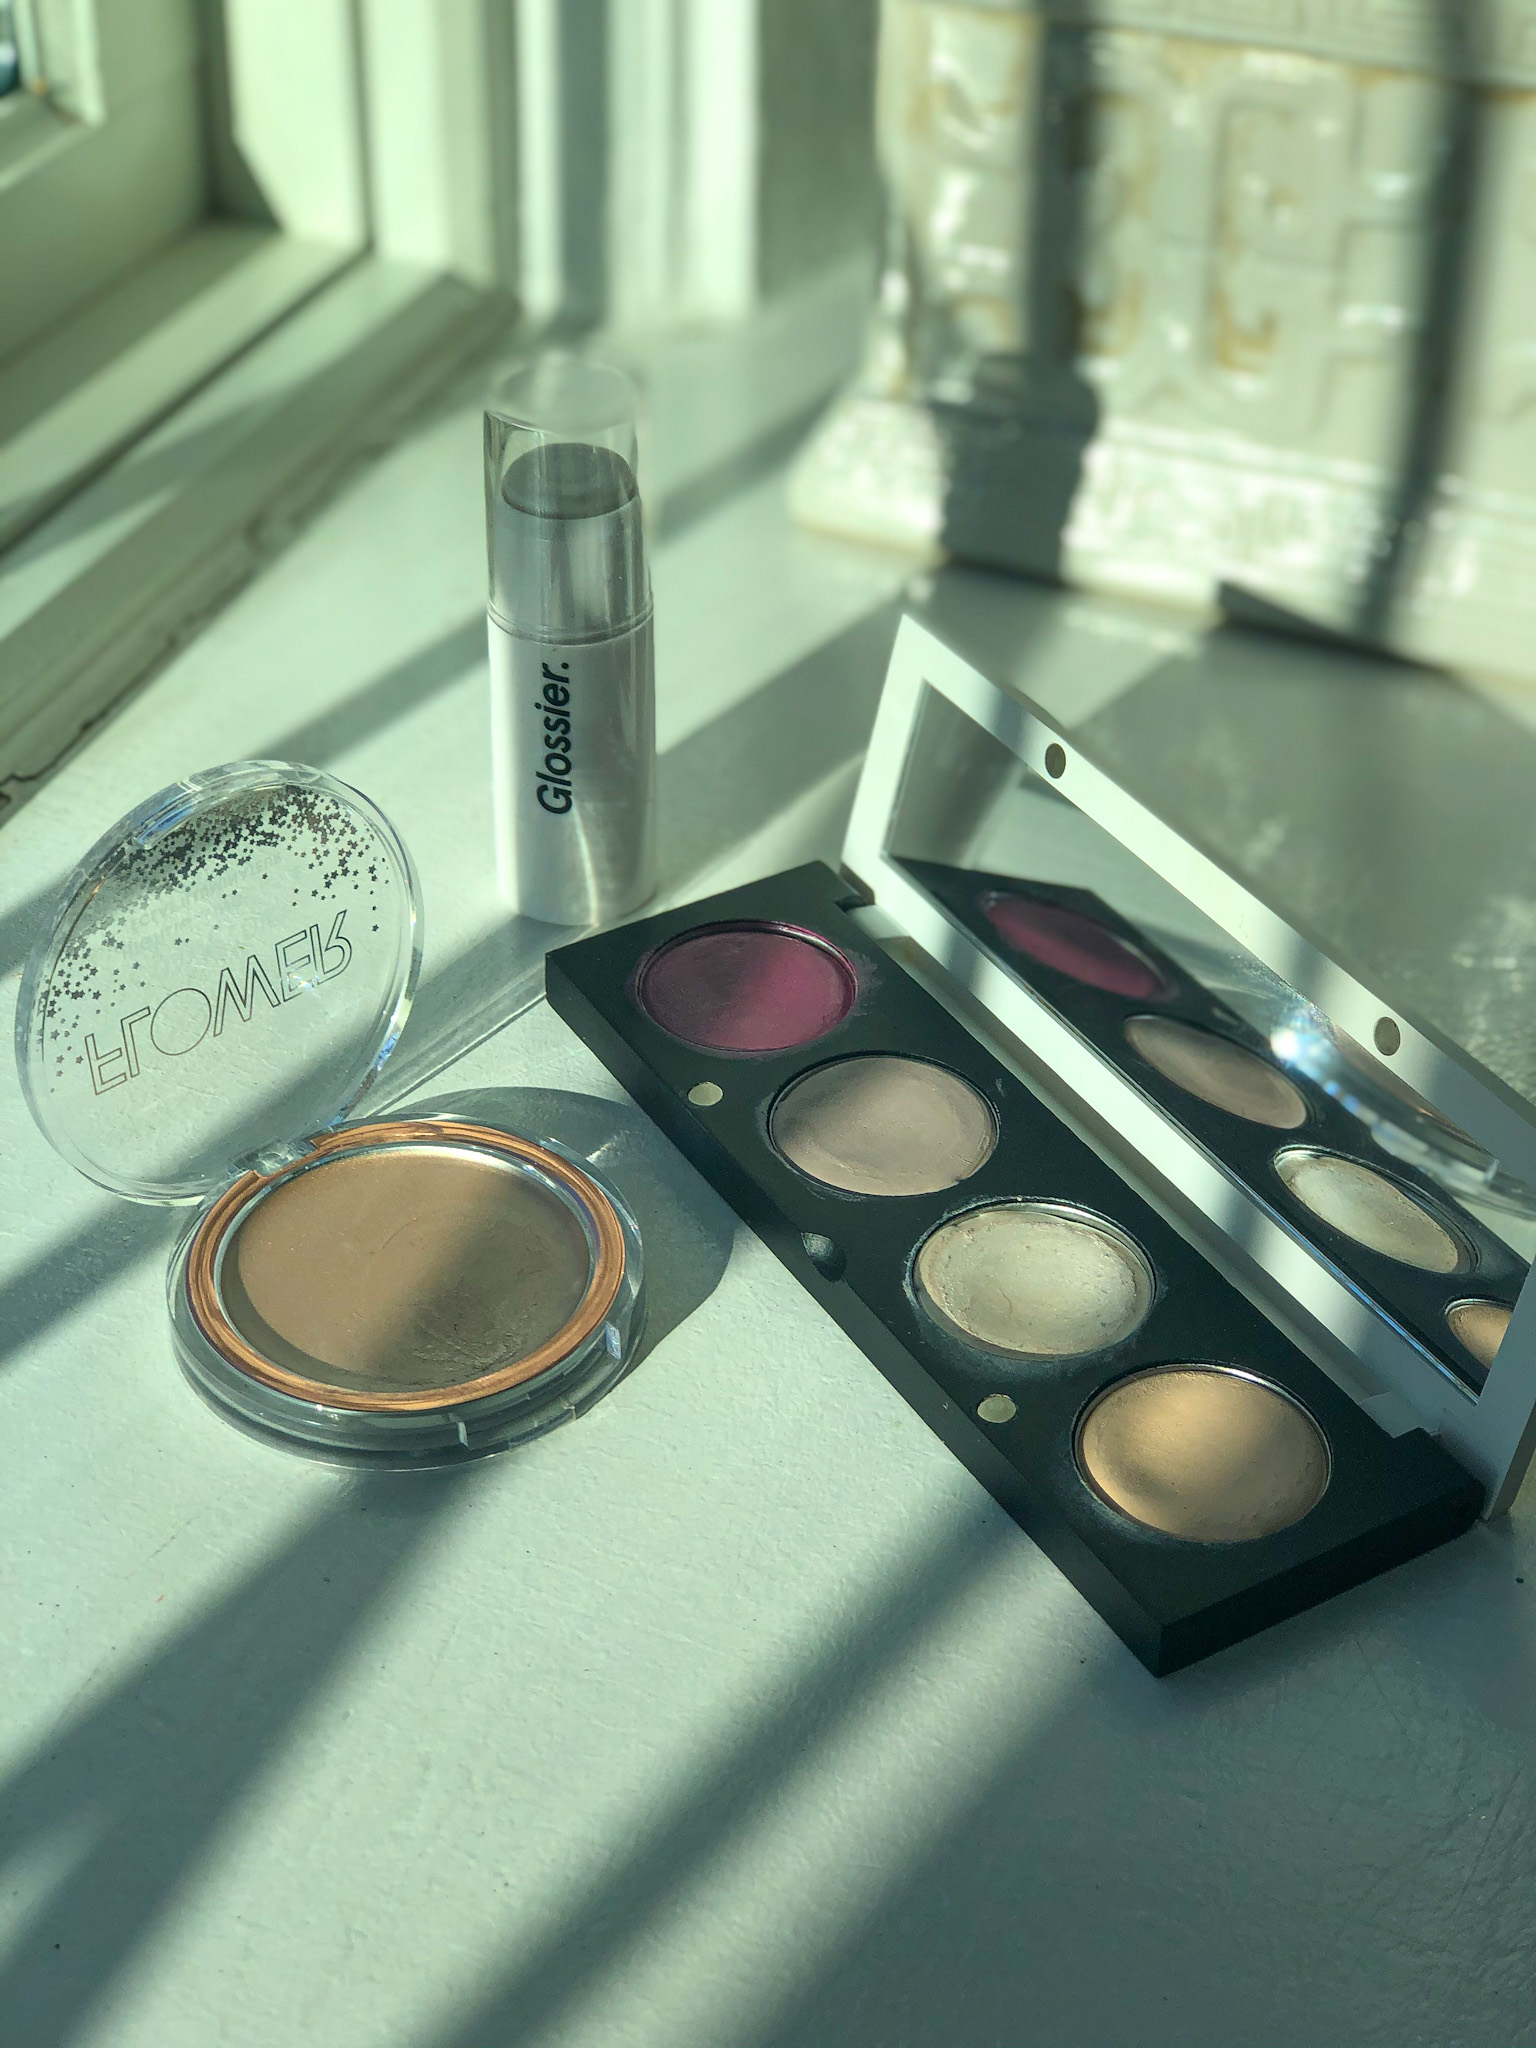 My glossy highlighter edit featuring Glossier, Flower Beauty & The Organic Skin Co